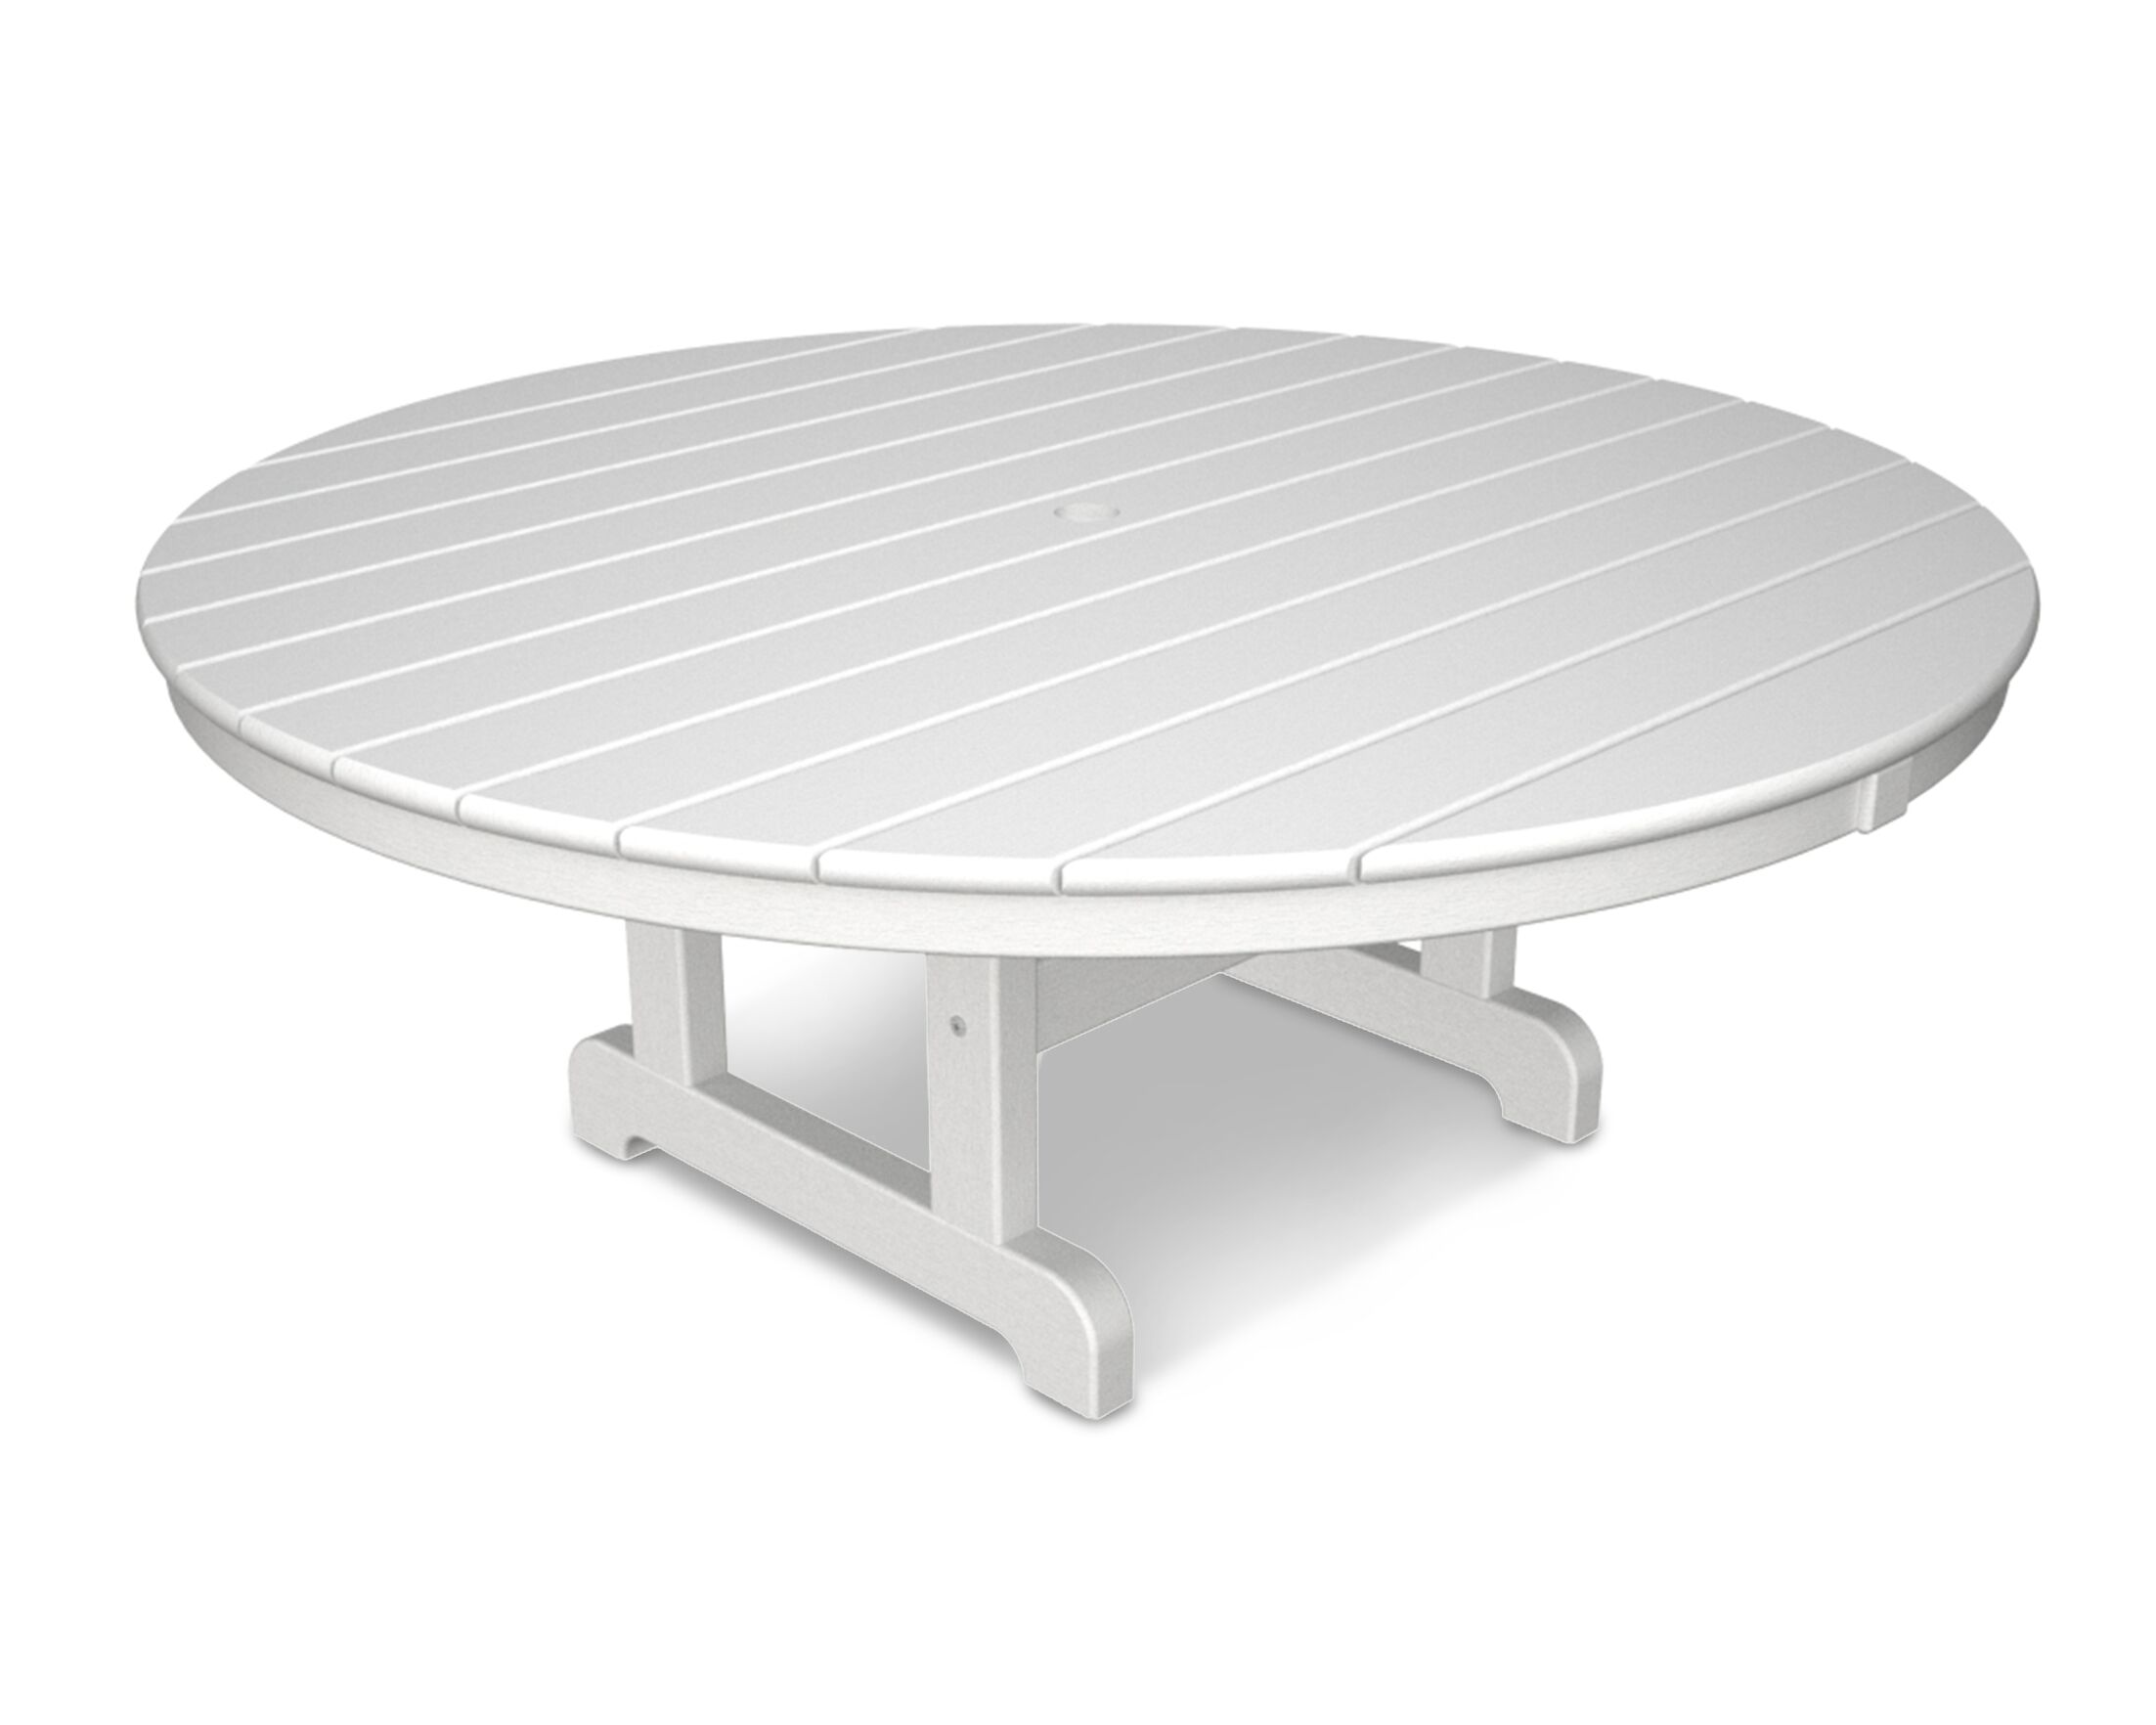 Round Conversation Coffee Table Finish: White, Table Size: 36